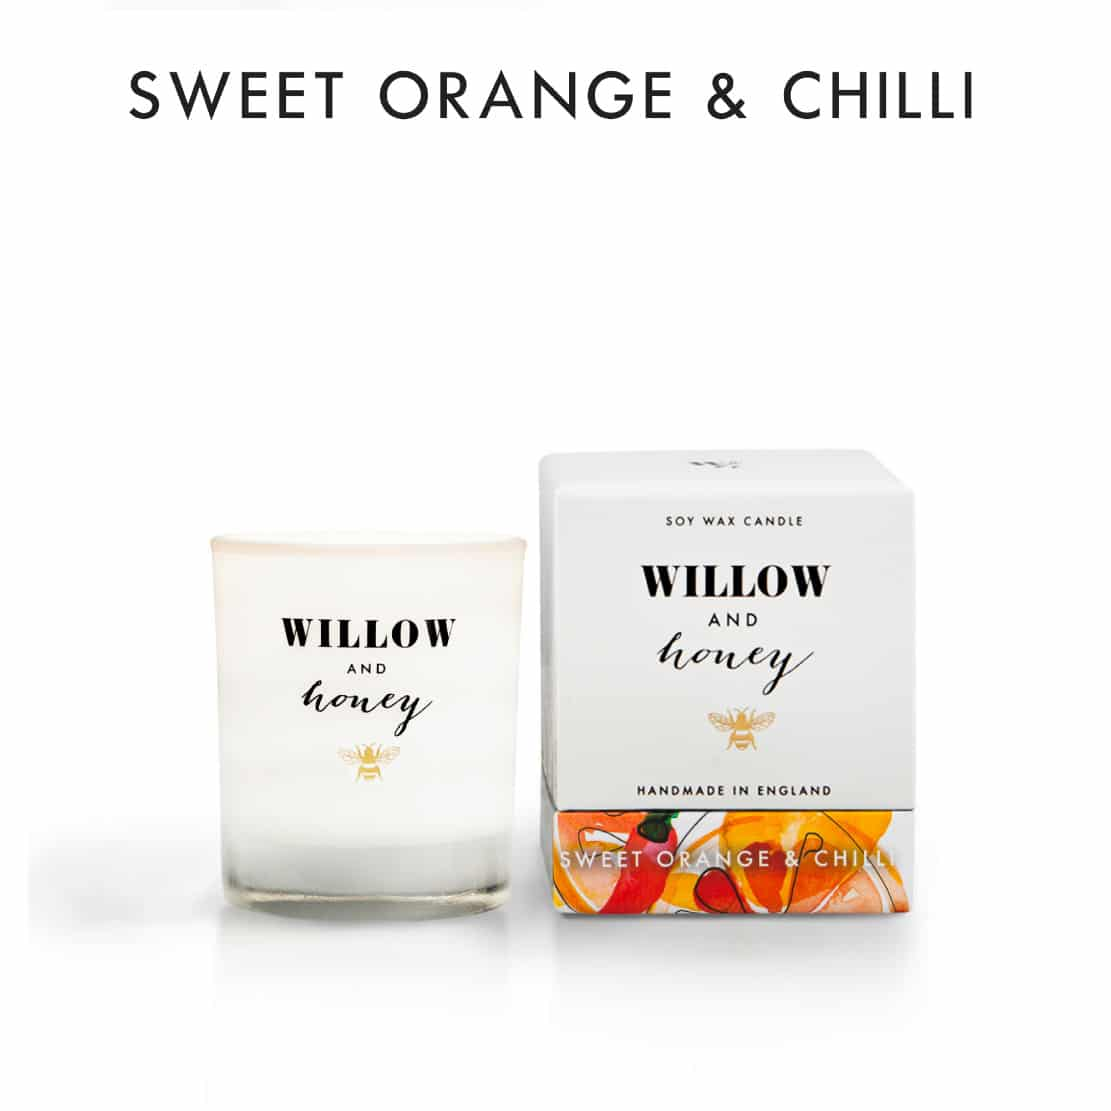 Willow and Honey Sweet Orange and Chilli Candle 60g